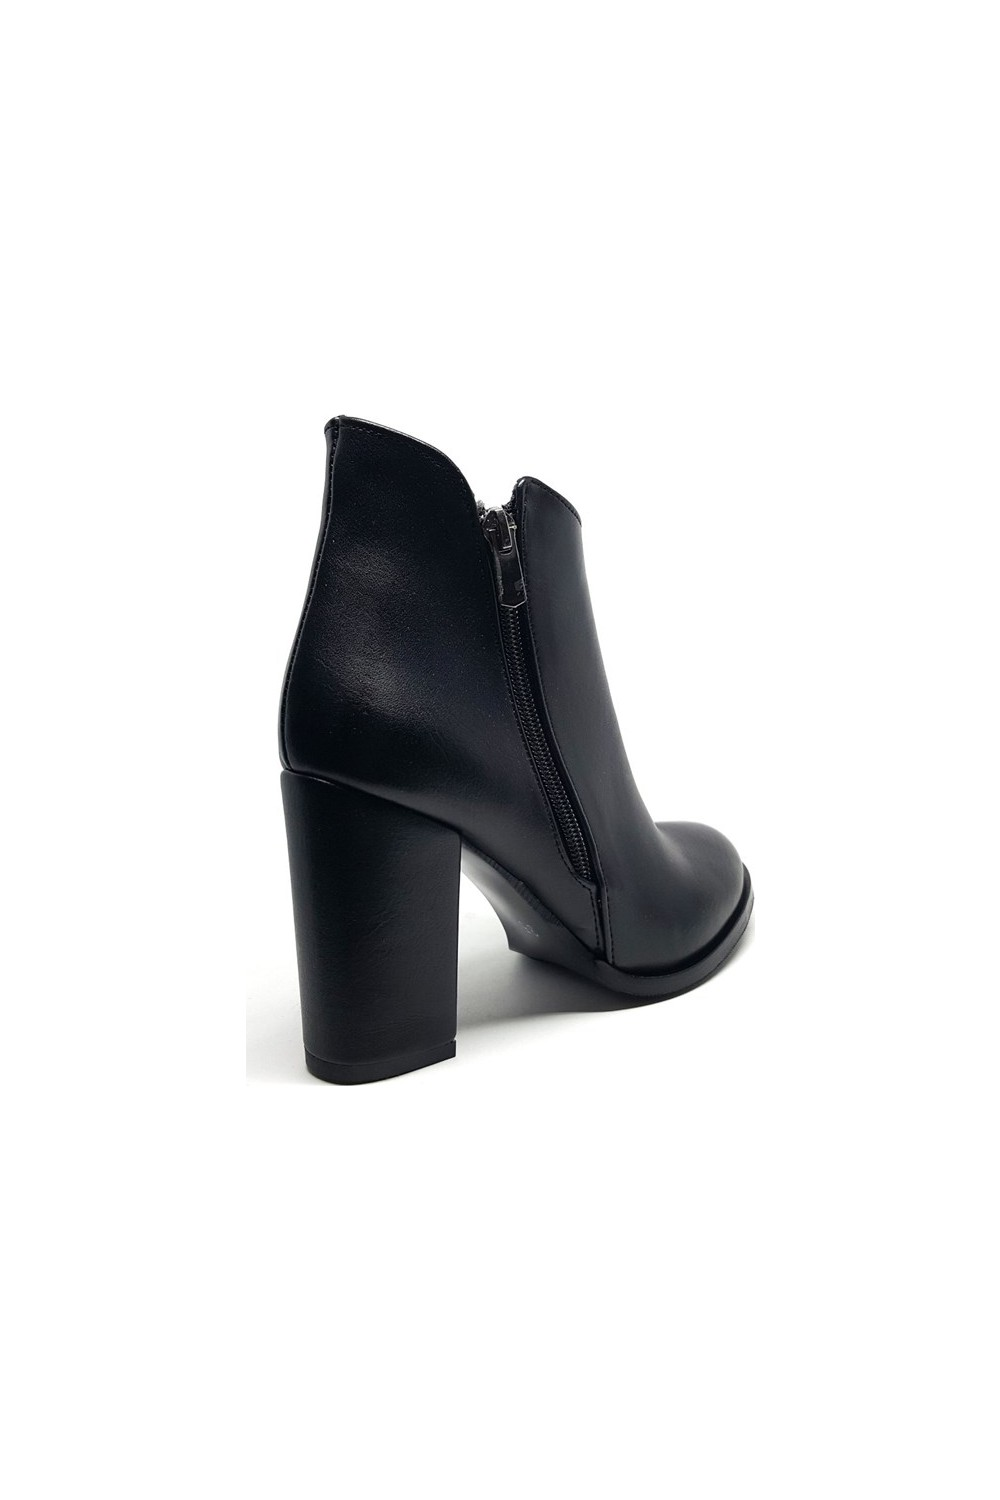 Shoes And Boots Black Women Shop 164-560-Y